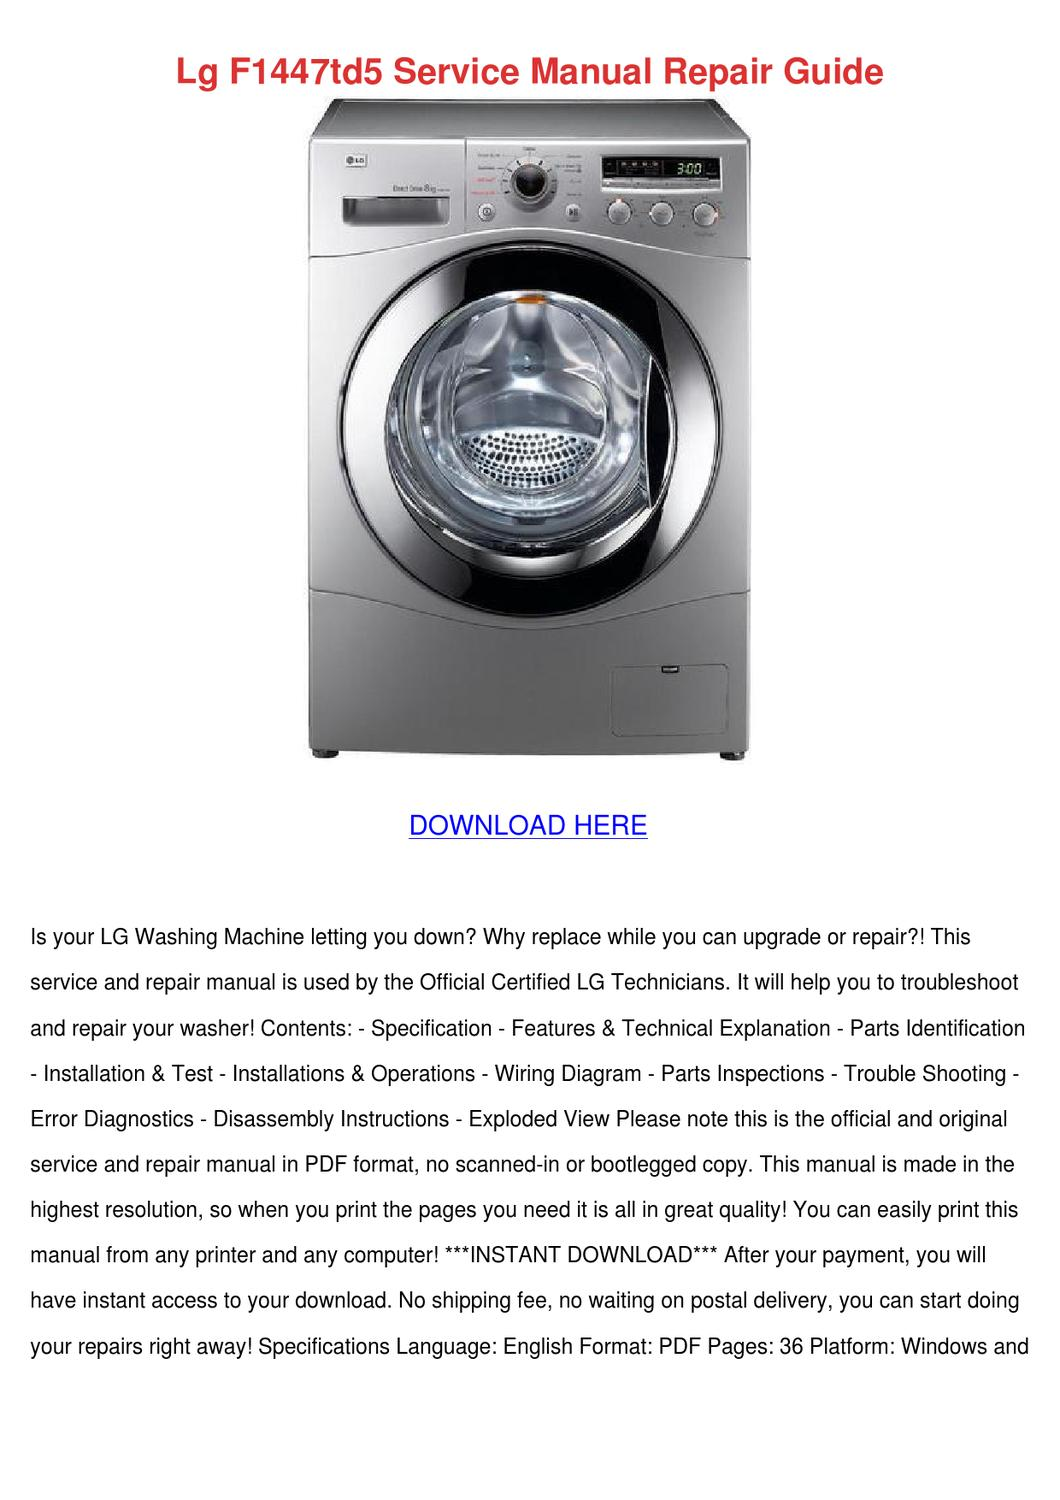 Lg F1447td5 Service Manual Repair Guide by SylviaSledge - issuu